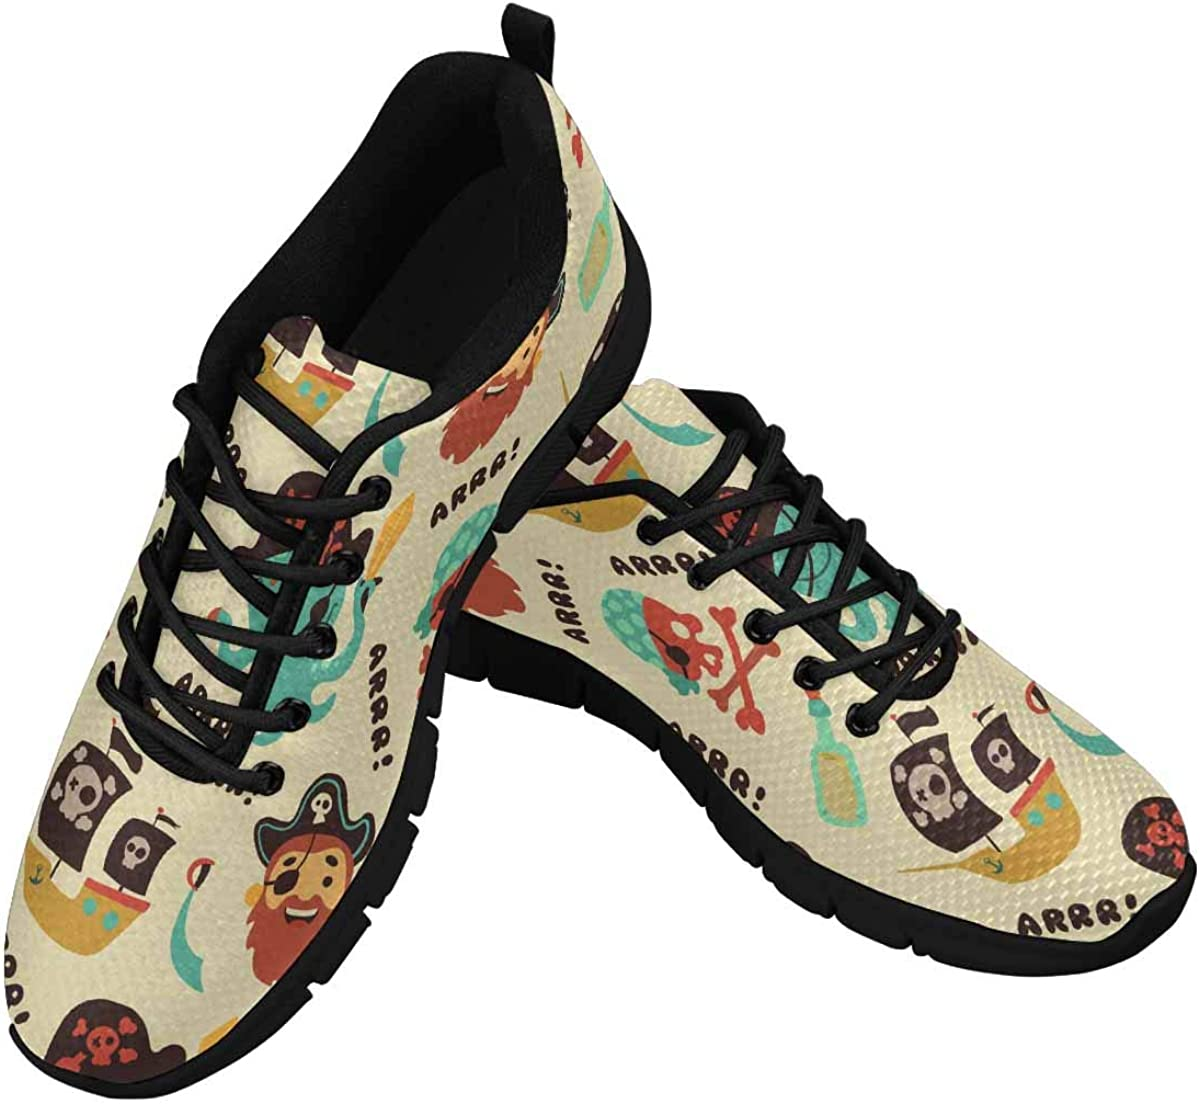 INTERESTPRINT Halloween Pirate Skull Women's Running Shoes Mesh Breathable Sports Casual Shoes